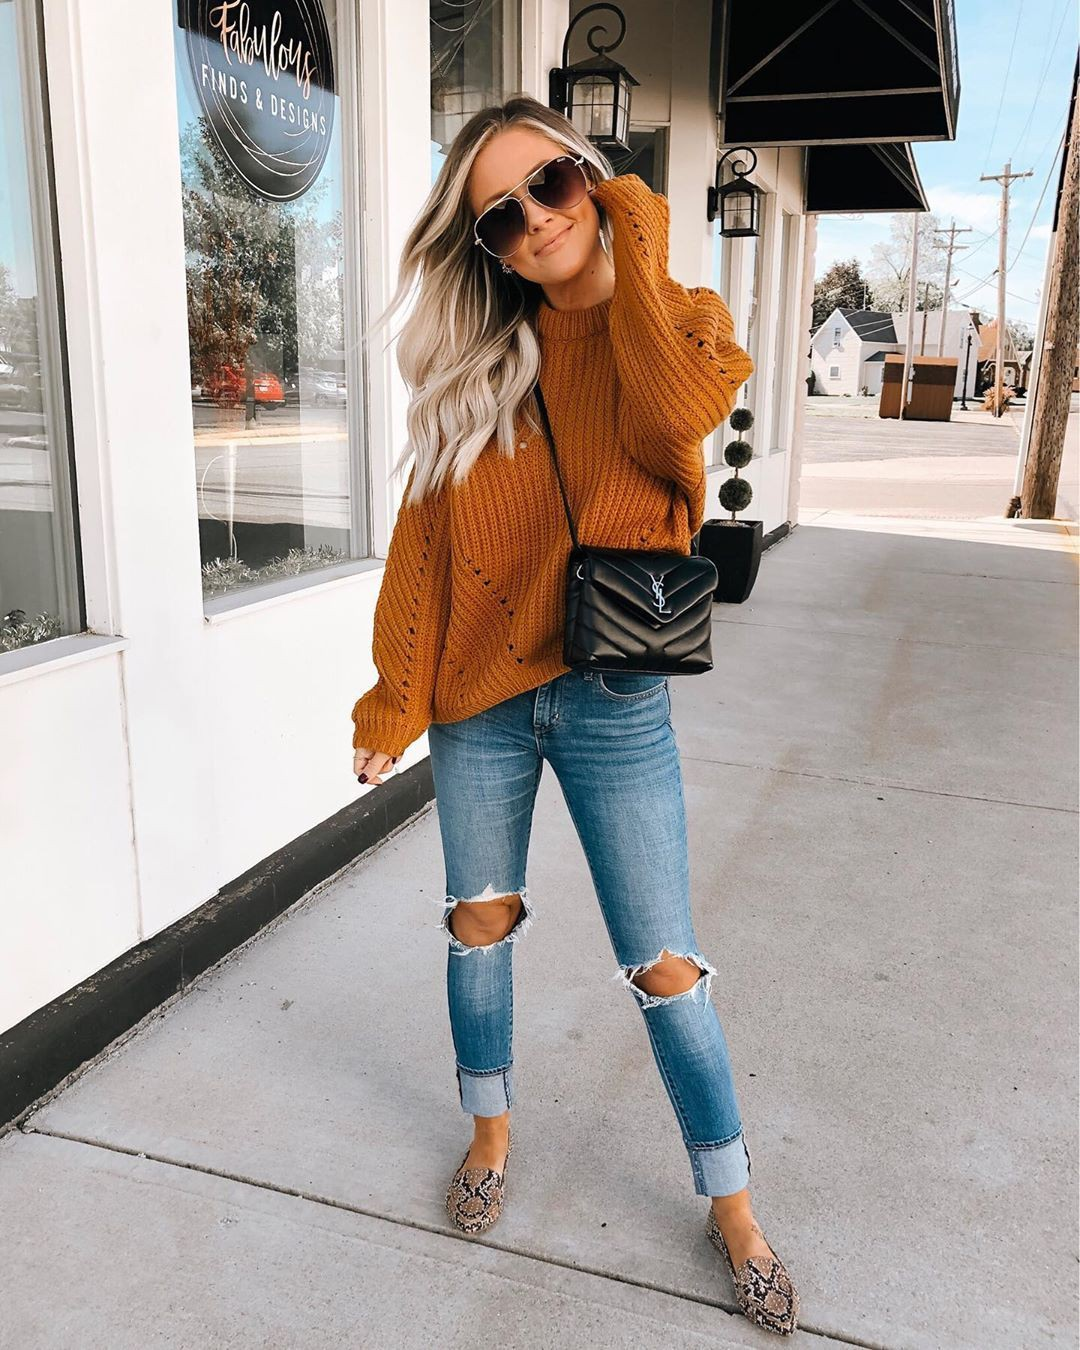 Orange and brown clothing ideas with ripped jeans, mom jeans, denim